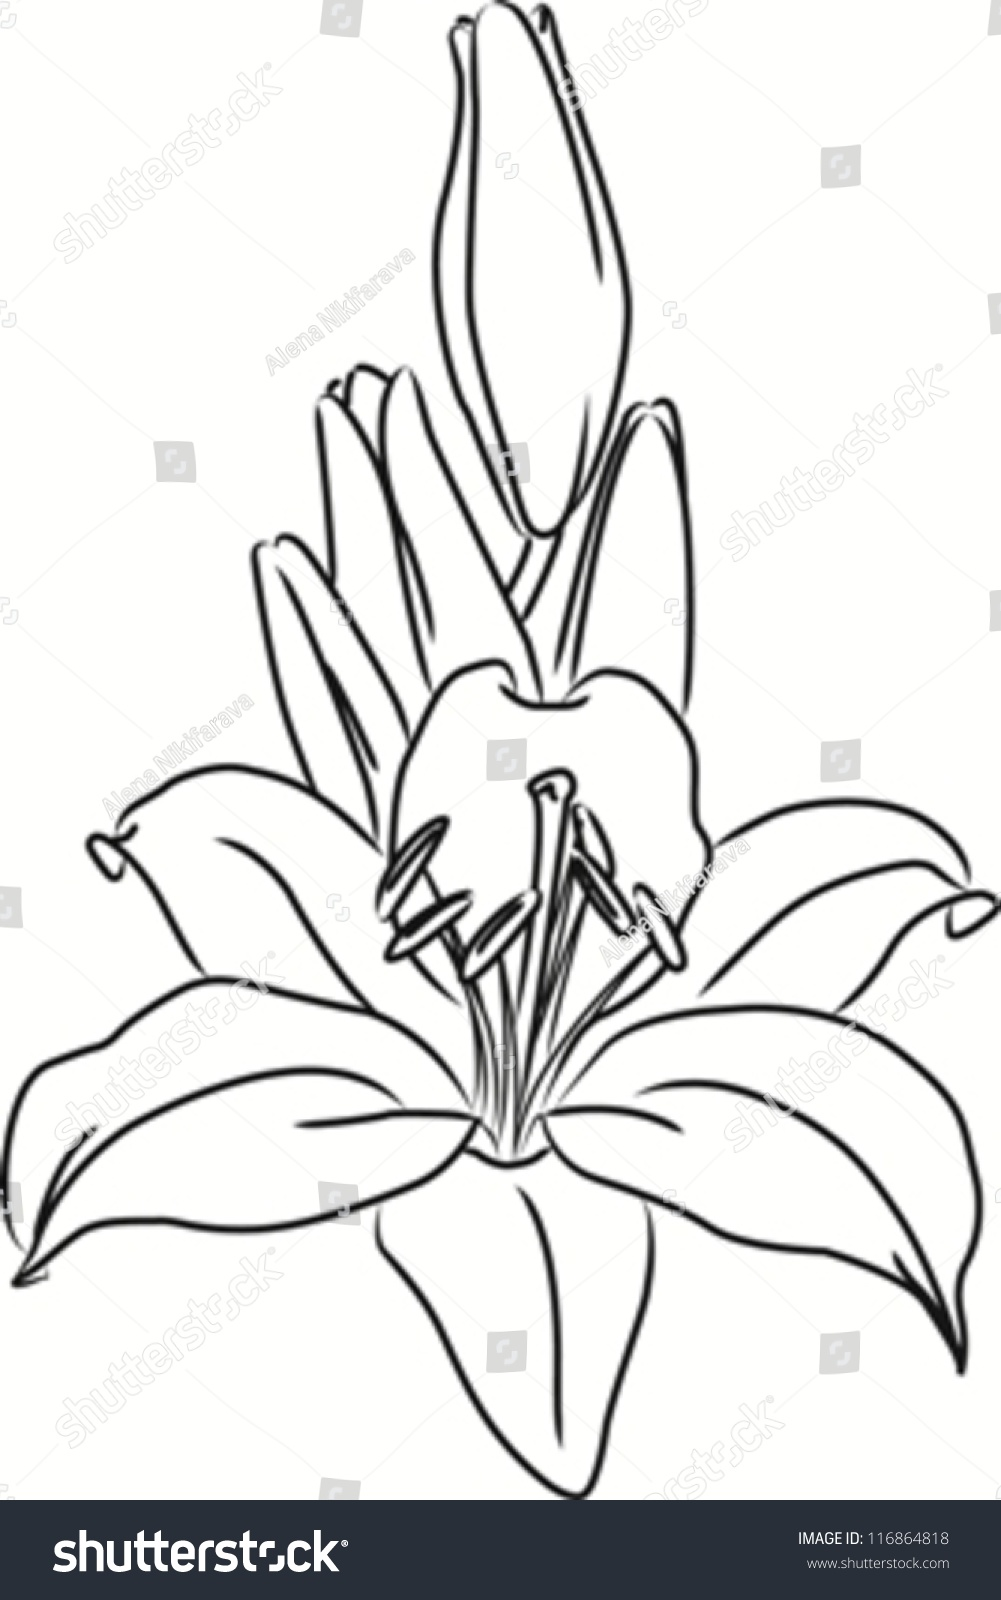 Lily Flower Bouquet Buds Vector Outline Stock Vector Royalty Free